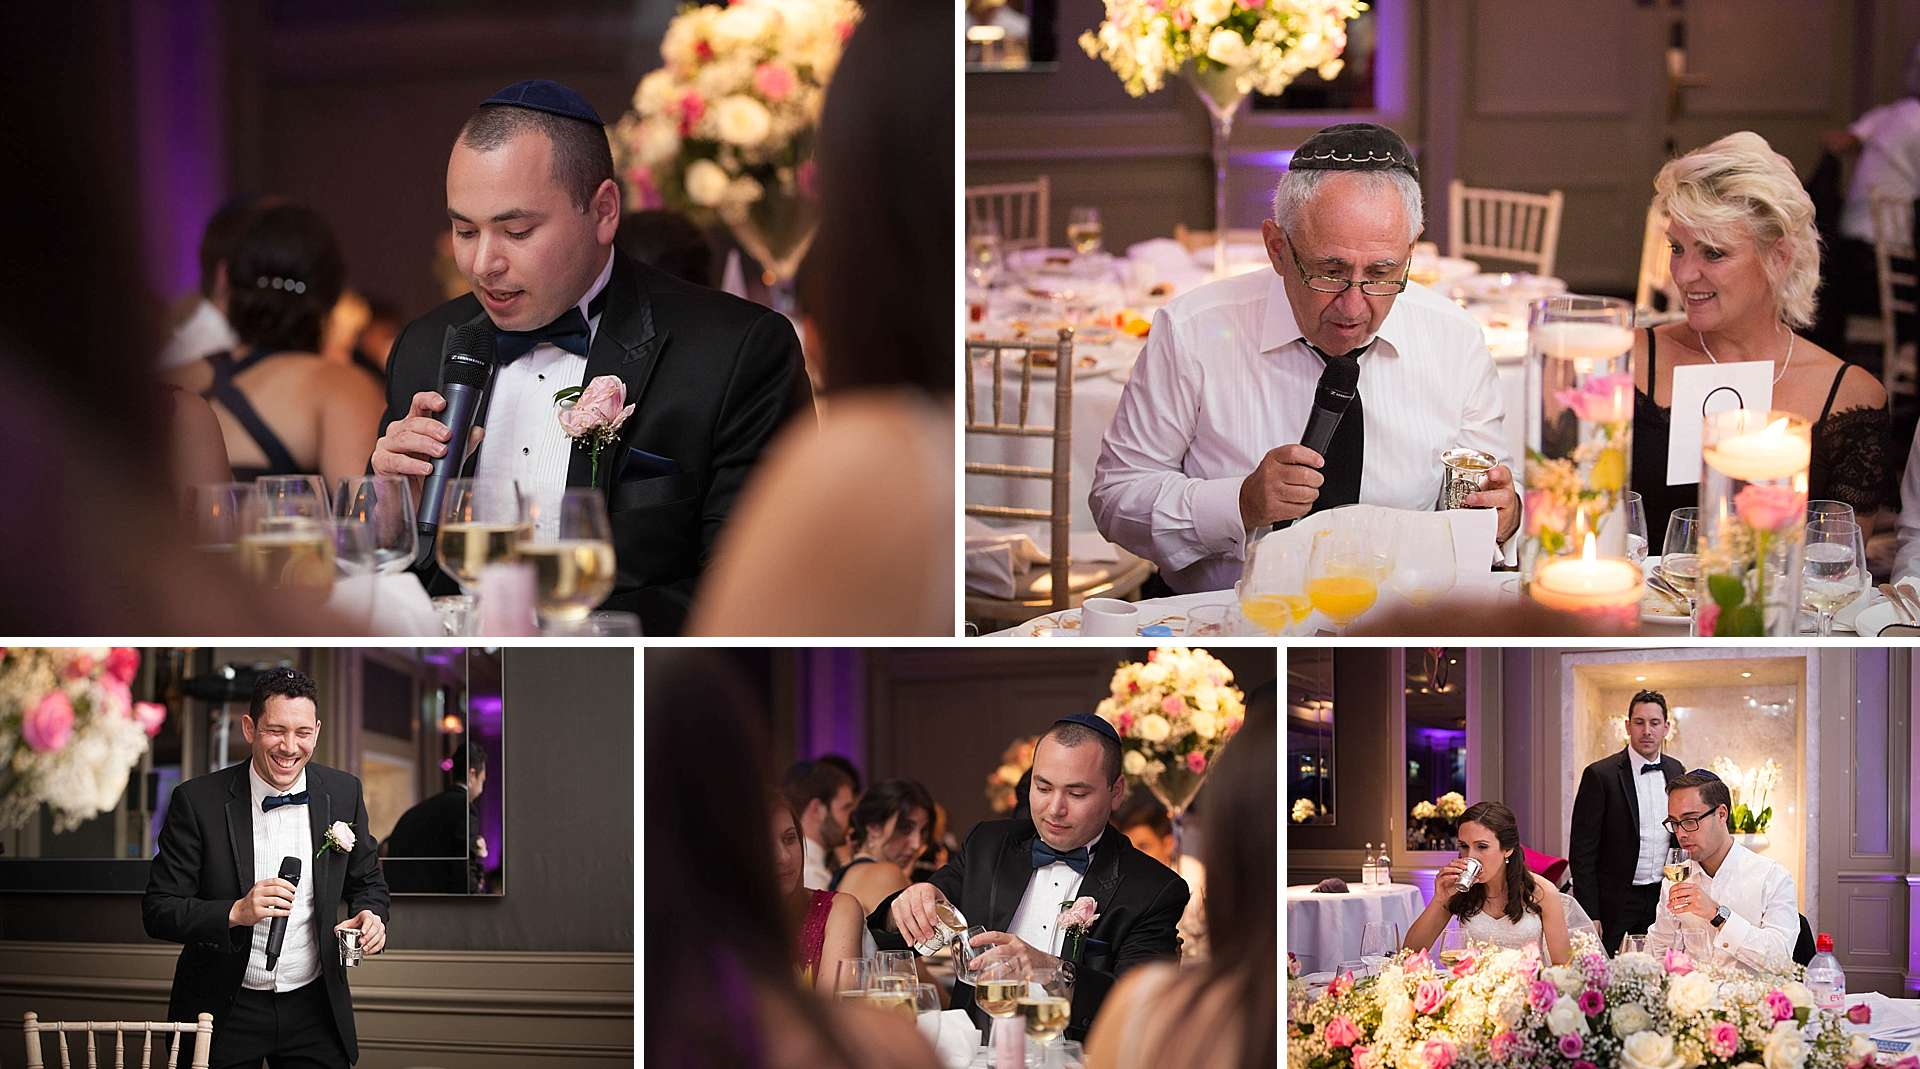 Jewish Wedding at Hyatt Regency London